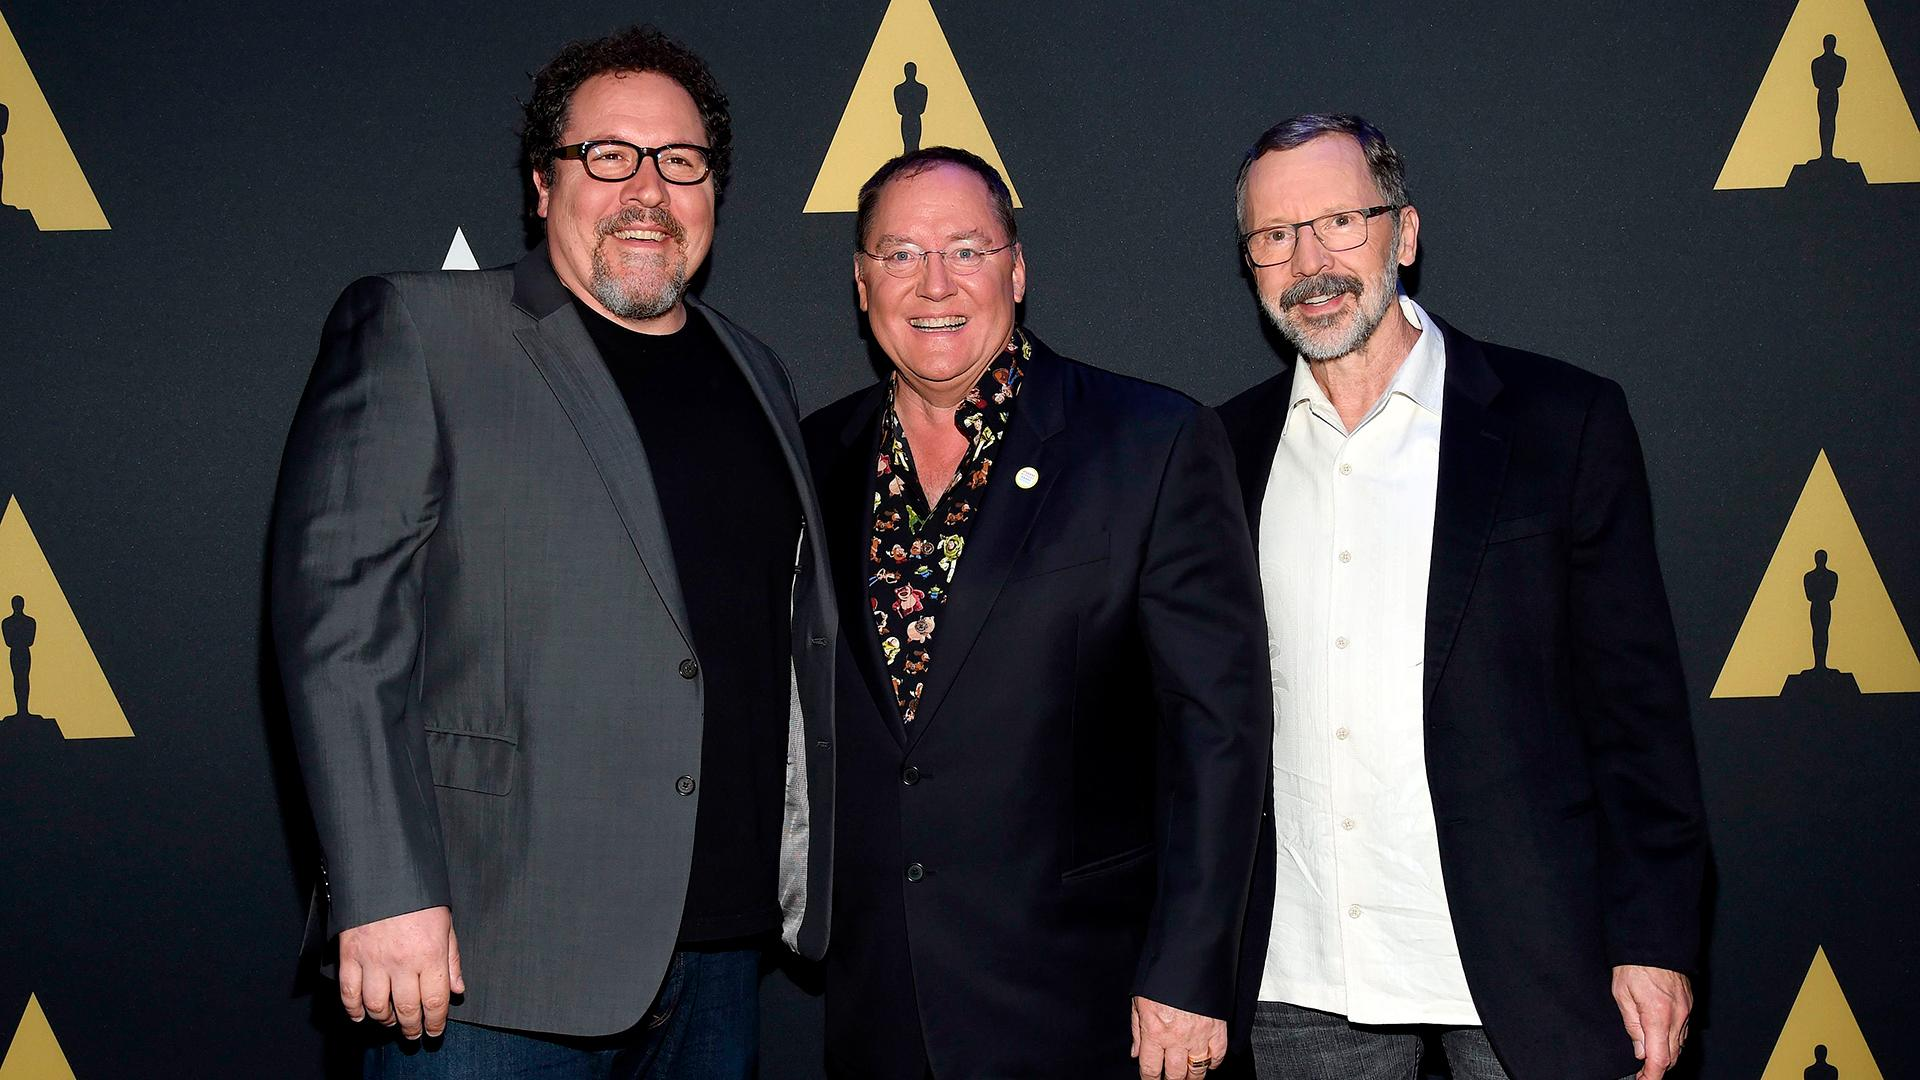 John Lasseter, Ed Catmull and 'Toy Story' Team Celebrate 20th Anniversary